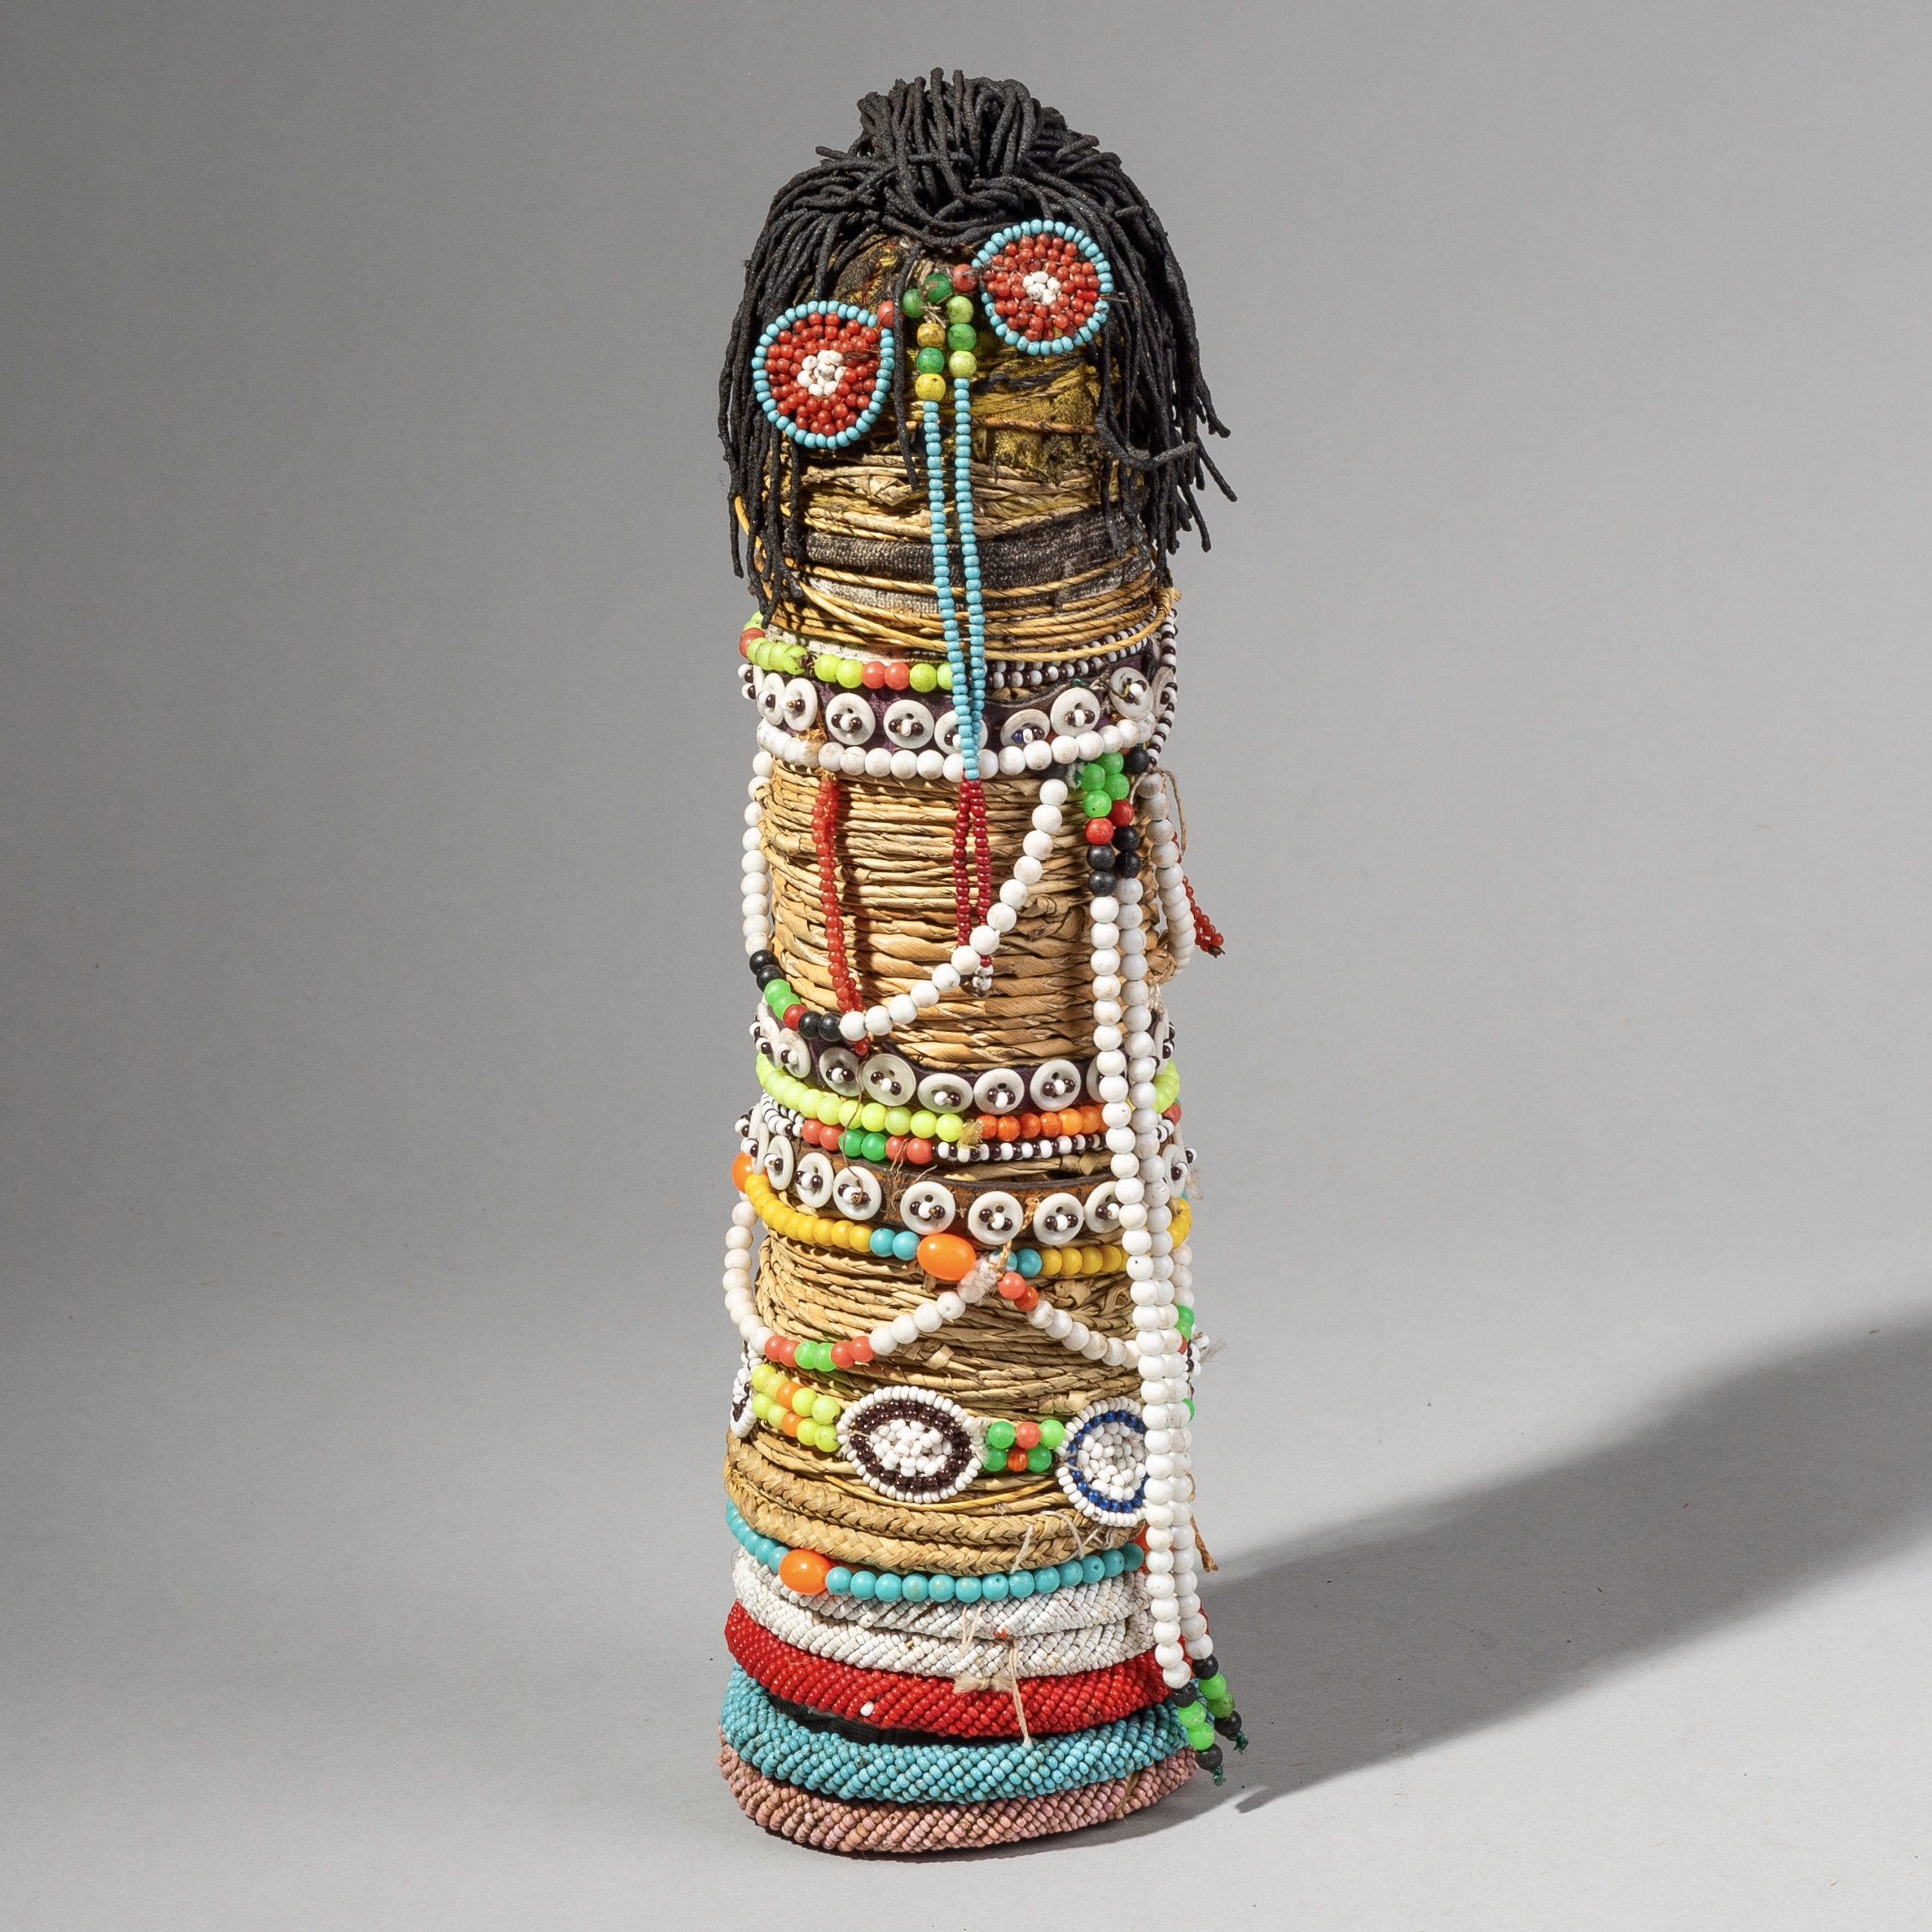 A KITCHEN SINK NTWANE DOLL FROM SOUTH AFRICA ( No 1751 )